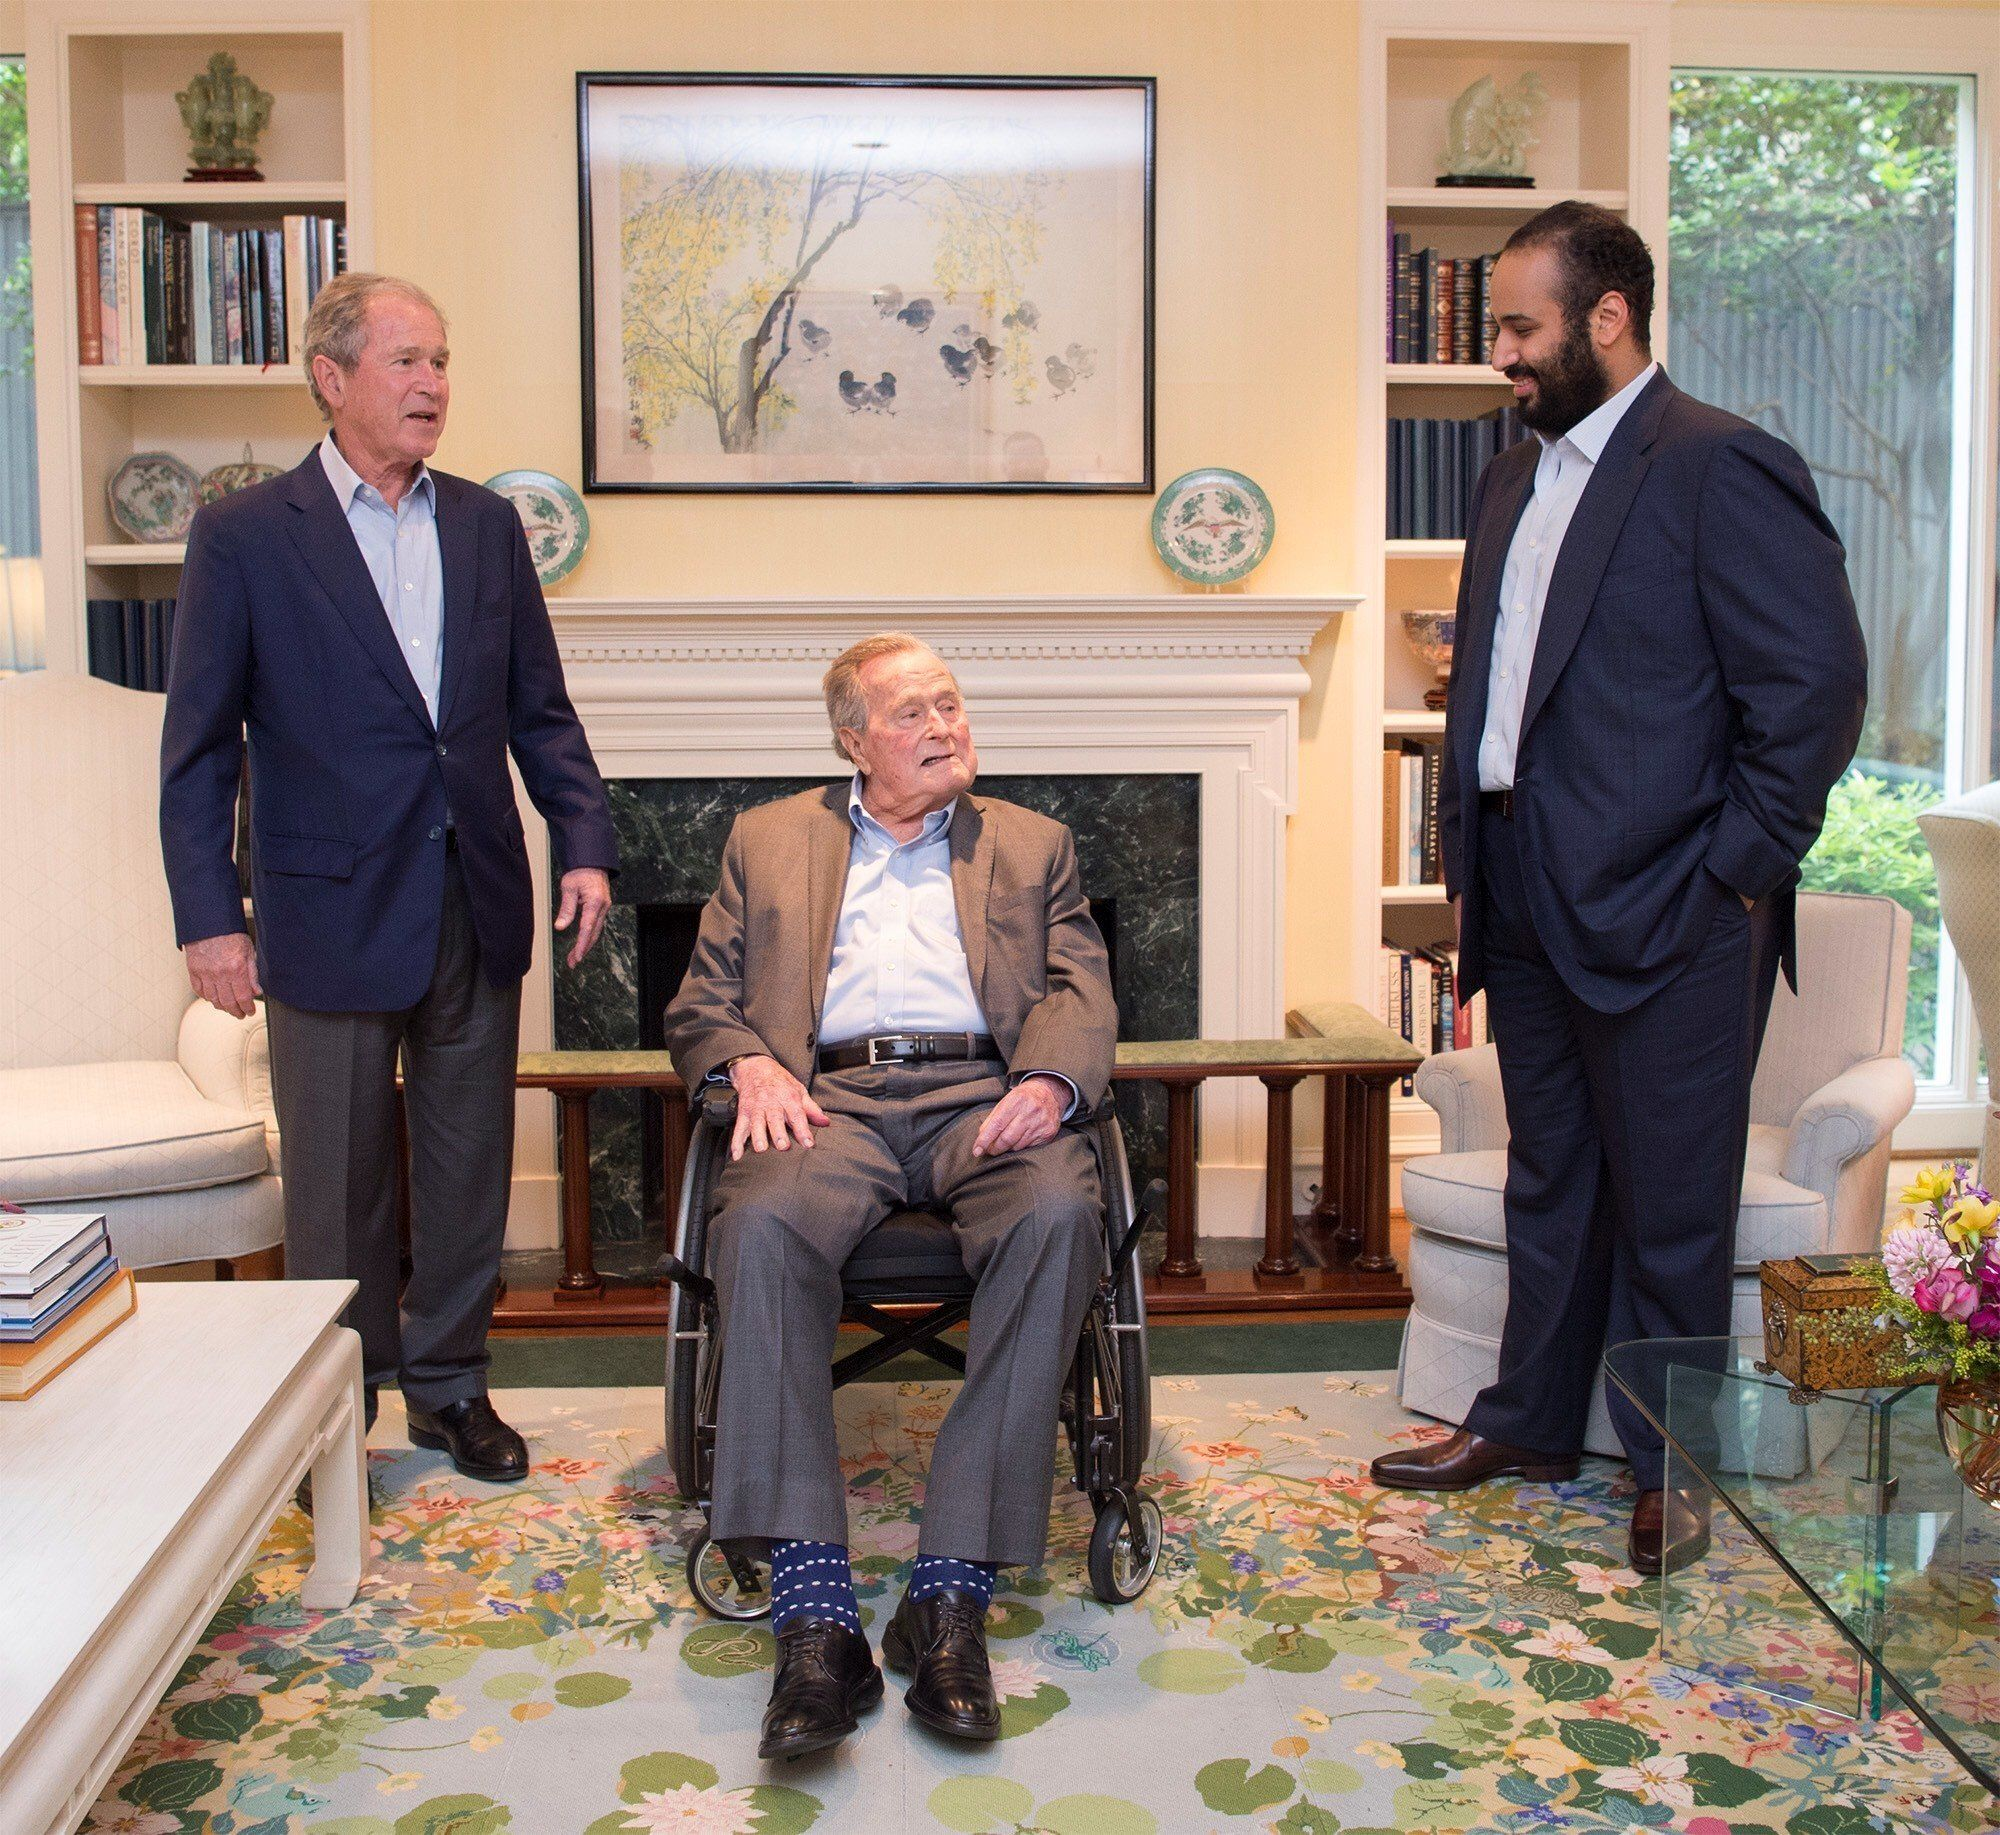 HOUSTON, USA - APRIL 07: (----EDITORIAL USE ONLY  MANDATORY CREDIT - 'BANDAR ALGALOUD / SAUDI KINGDOM COUNCIL / HANDOUT' - NO MARKETING NO ADVERTISING CAMPAIGNS - DISTRIBUTED AS A SERVICE TO CLIENTS----) Crown Prince of Saudi Arabia Mohammed bin Salman Al Saud (R) meets with 41st President George H.W. Bush (R) and 43rd U.S. President, George W. Bush (L) in Houston, United States on April 8, 2018.  (Photo by Bandar Algaloud / Saudi Kingdom Council / Handout/Anadolu Agency/Getty Images)